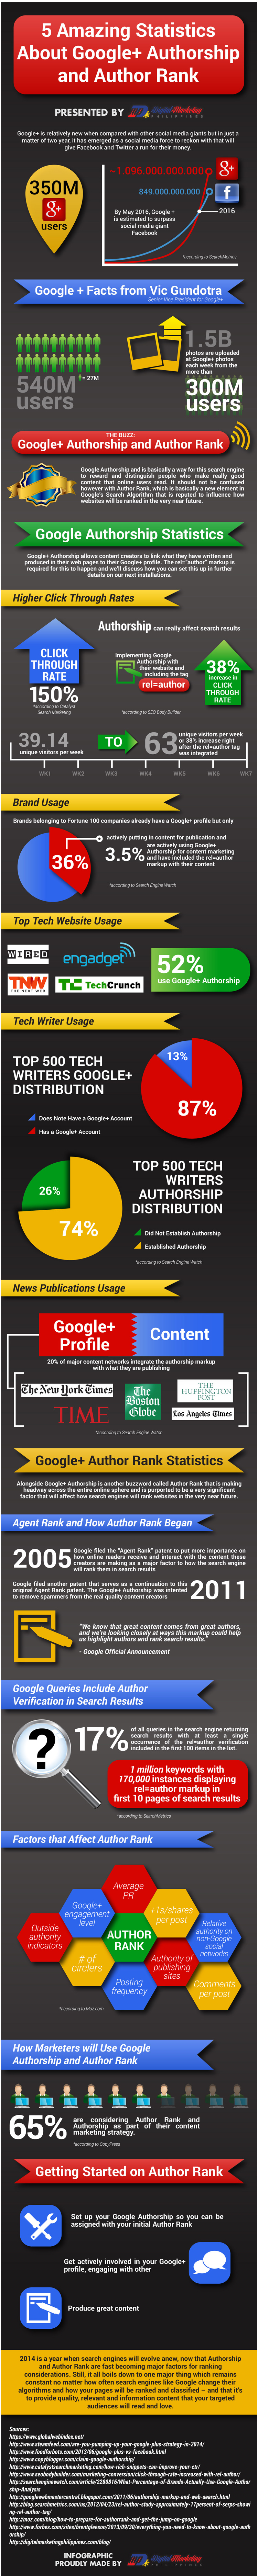 5 Amazing Statistics About Google Plus Authorship and Author Rank